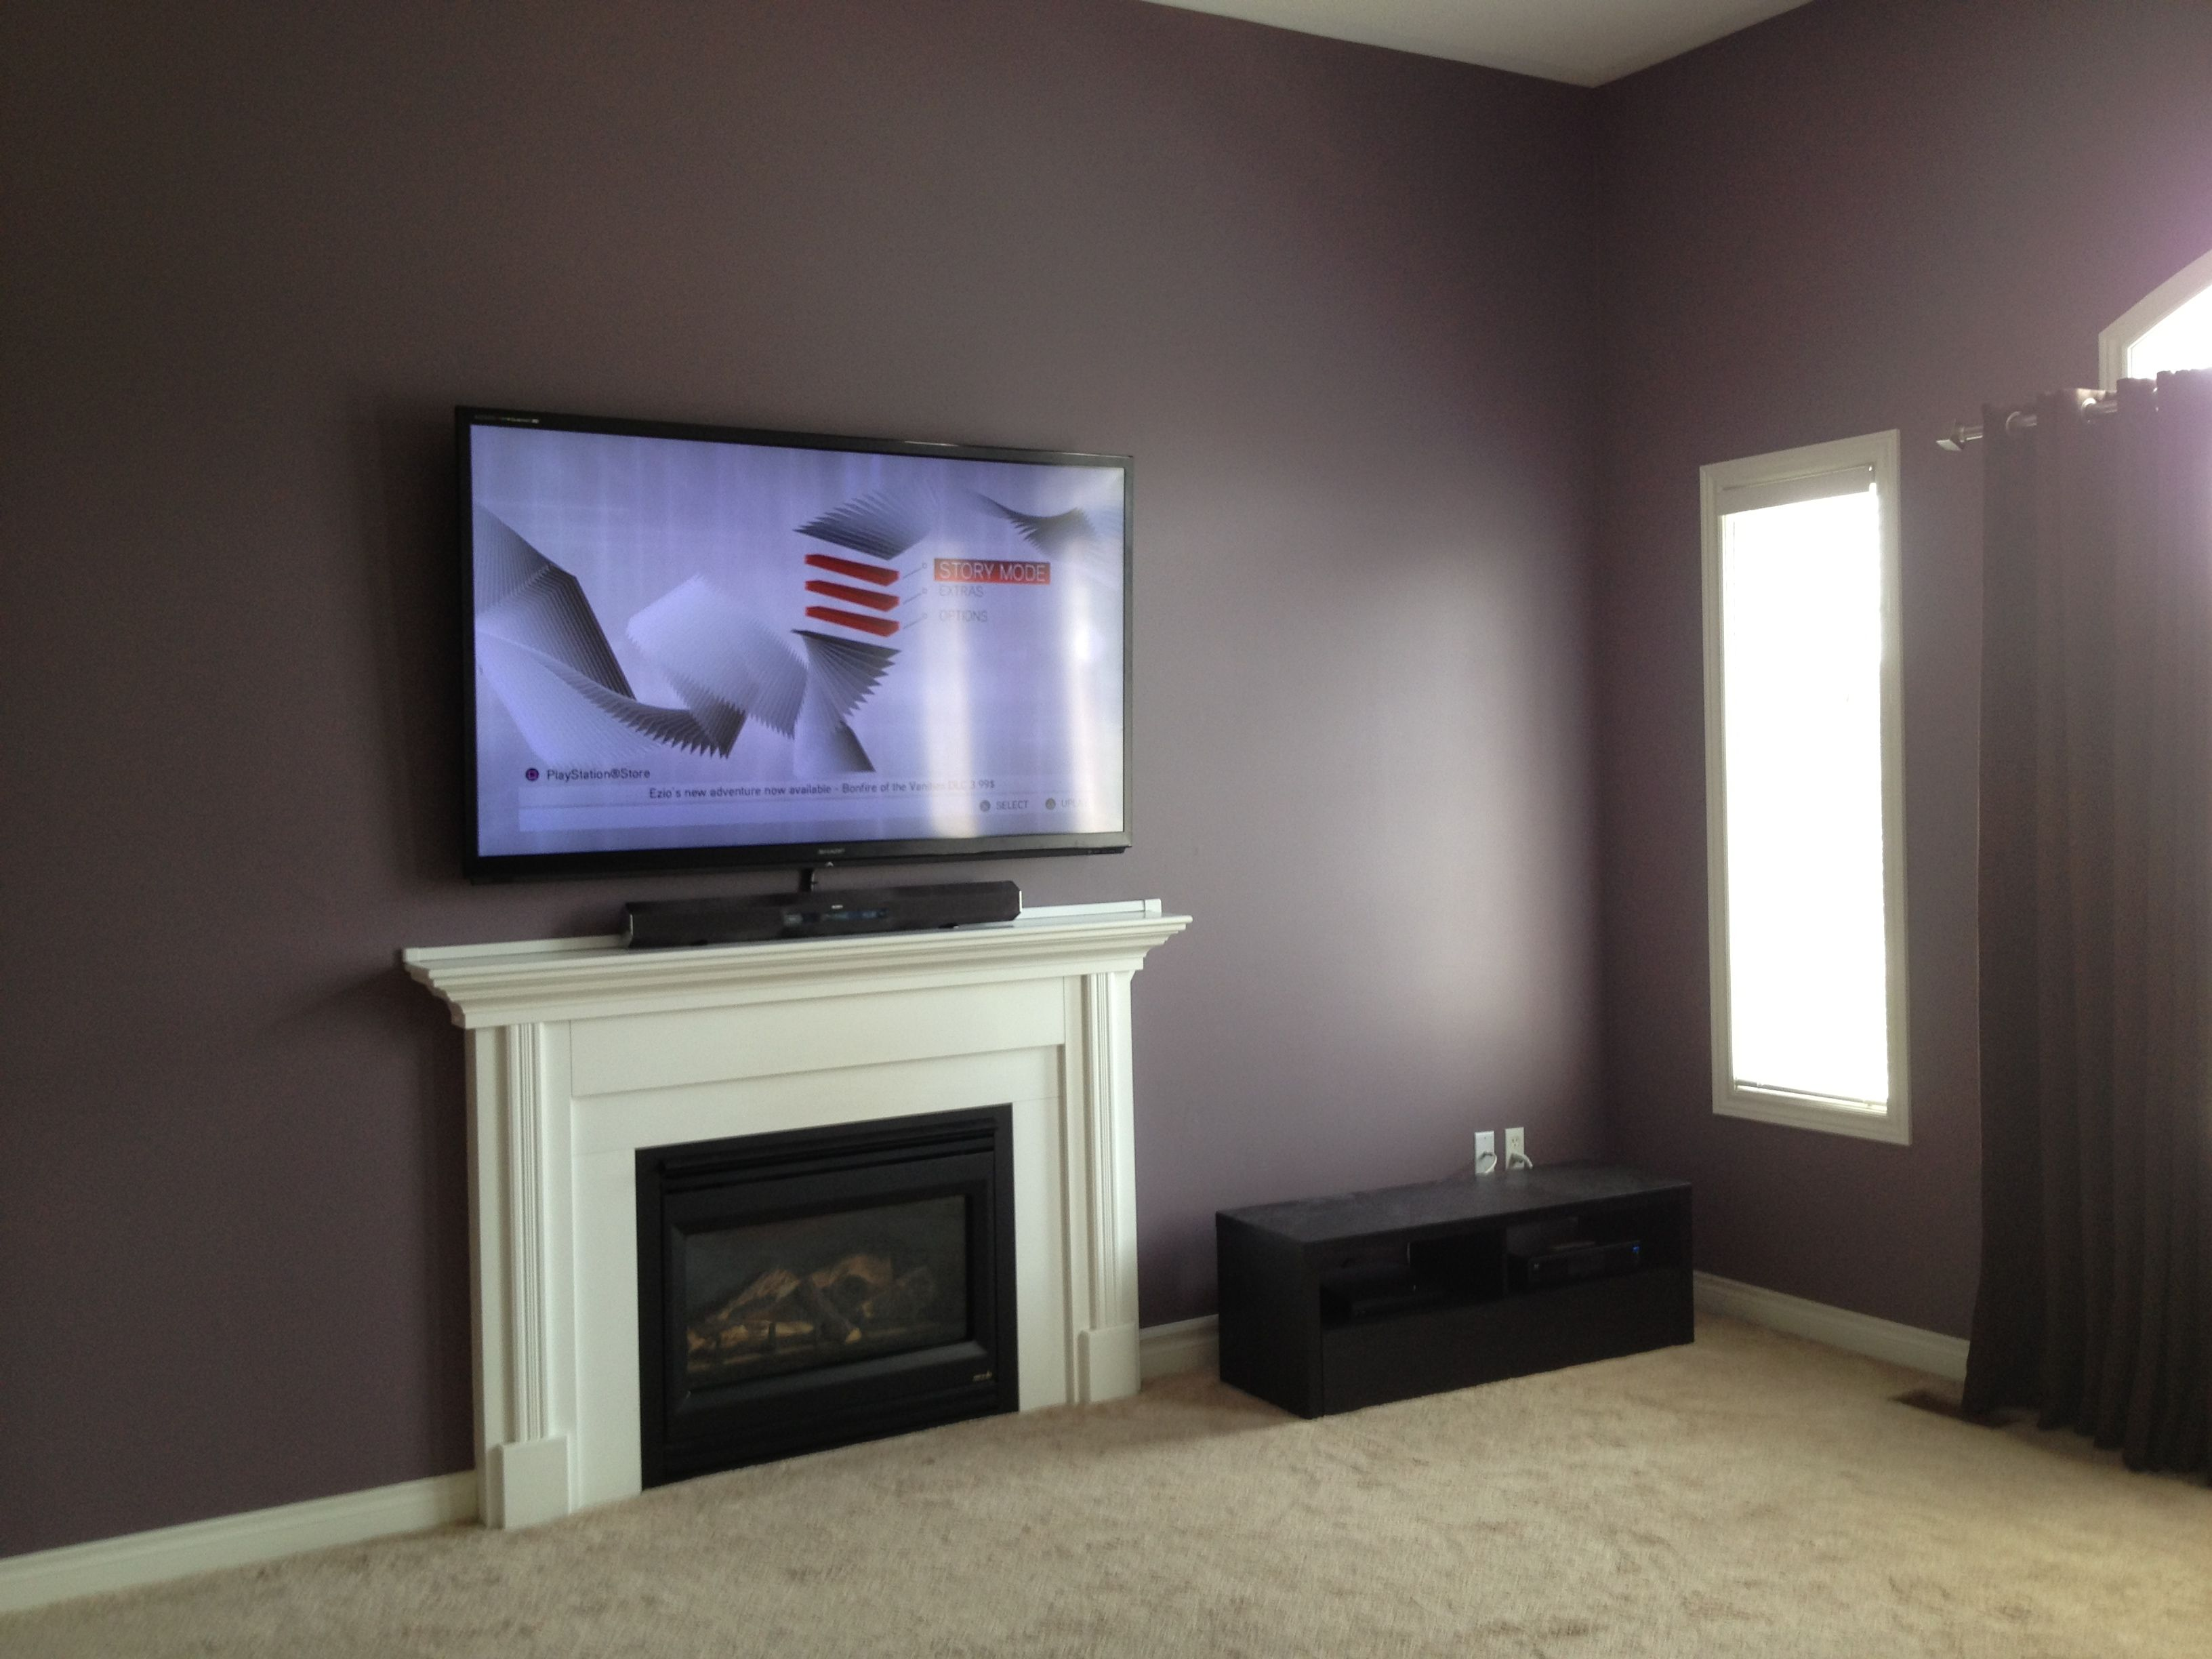 Sony Sound Bar Standing On Top Of The Fireplace Mantle